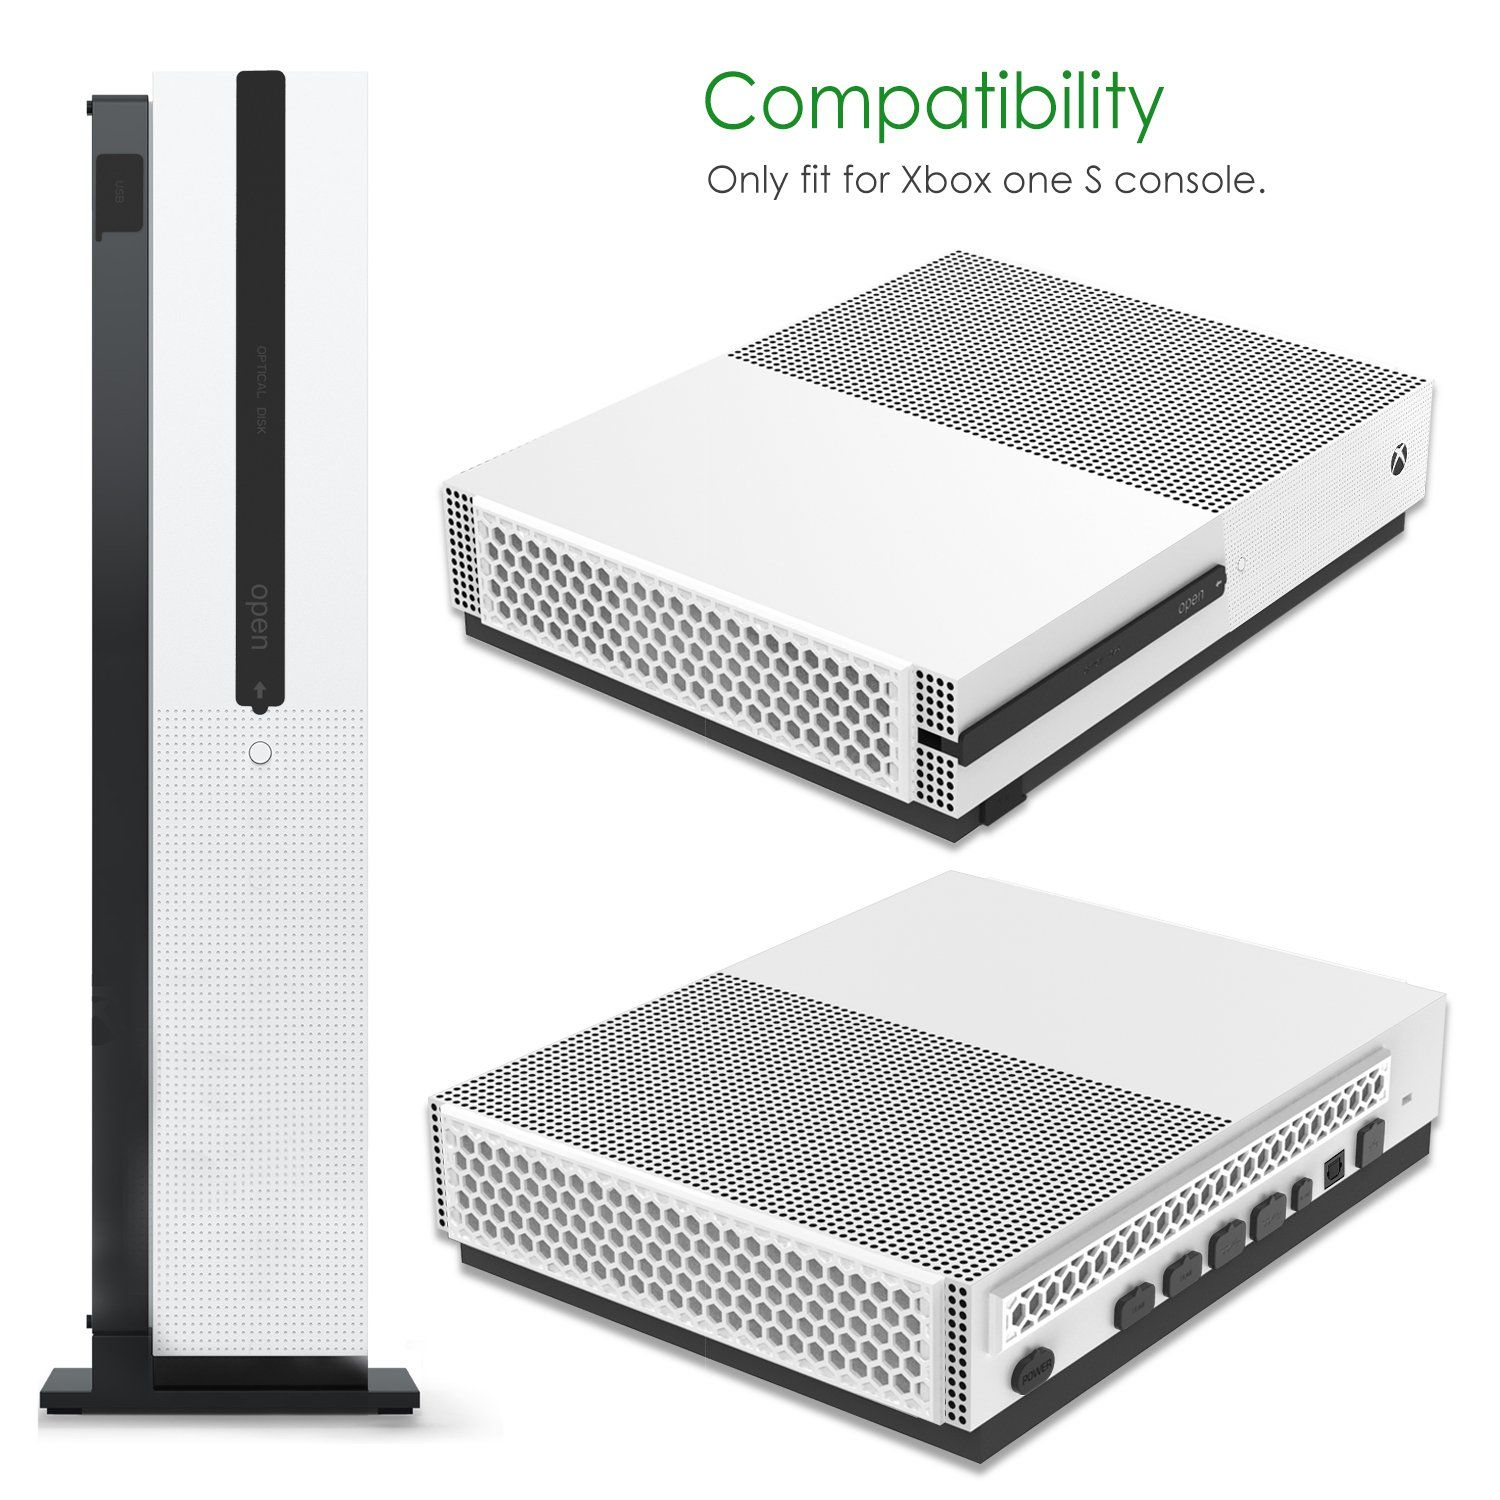 MoKo Xbox One S Dust-Proof Kit, Dirt-Proof Prevention Cover